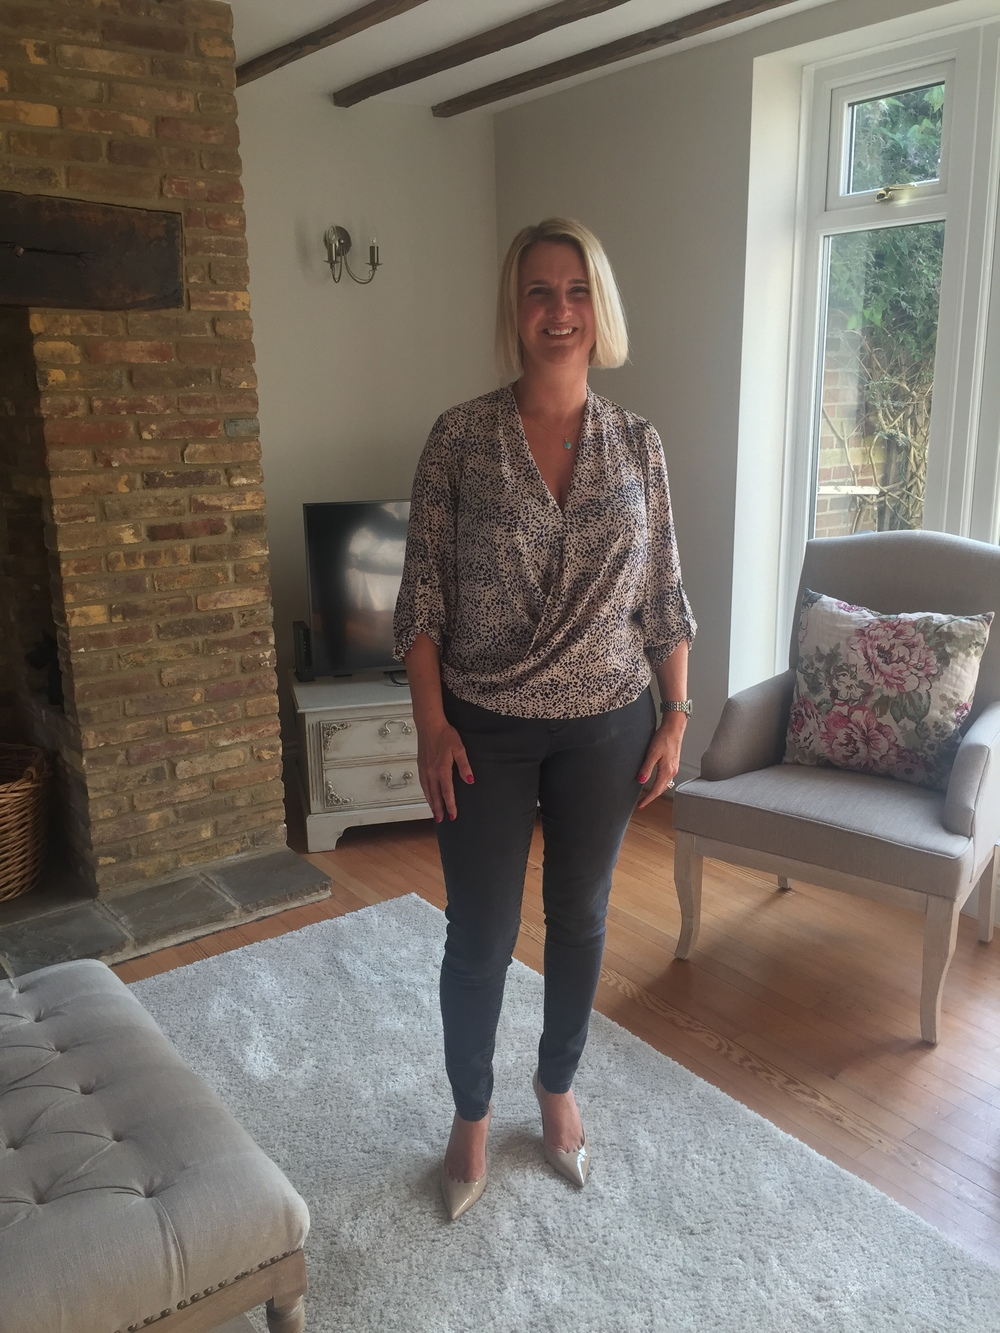 Top from Dorothy Perkins, Jeans - Eden jeggings from Dorothy Perkins , Shoes - nude Agnes by Jimmy Choo